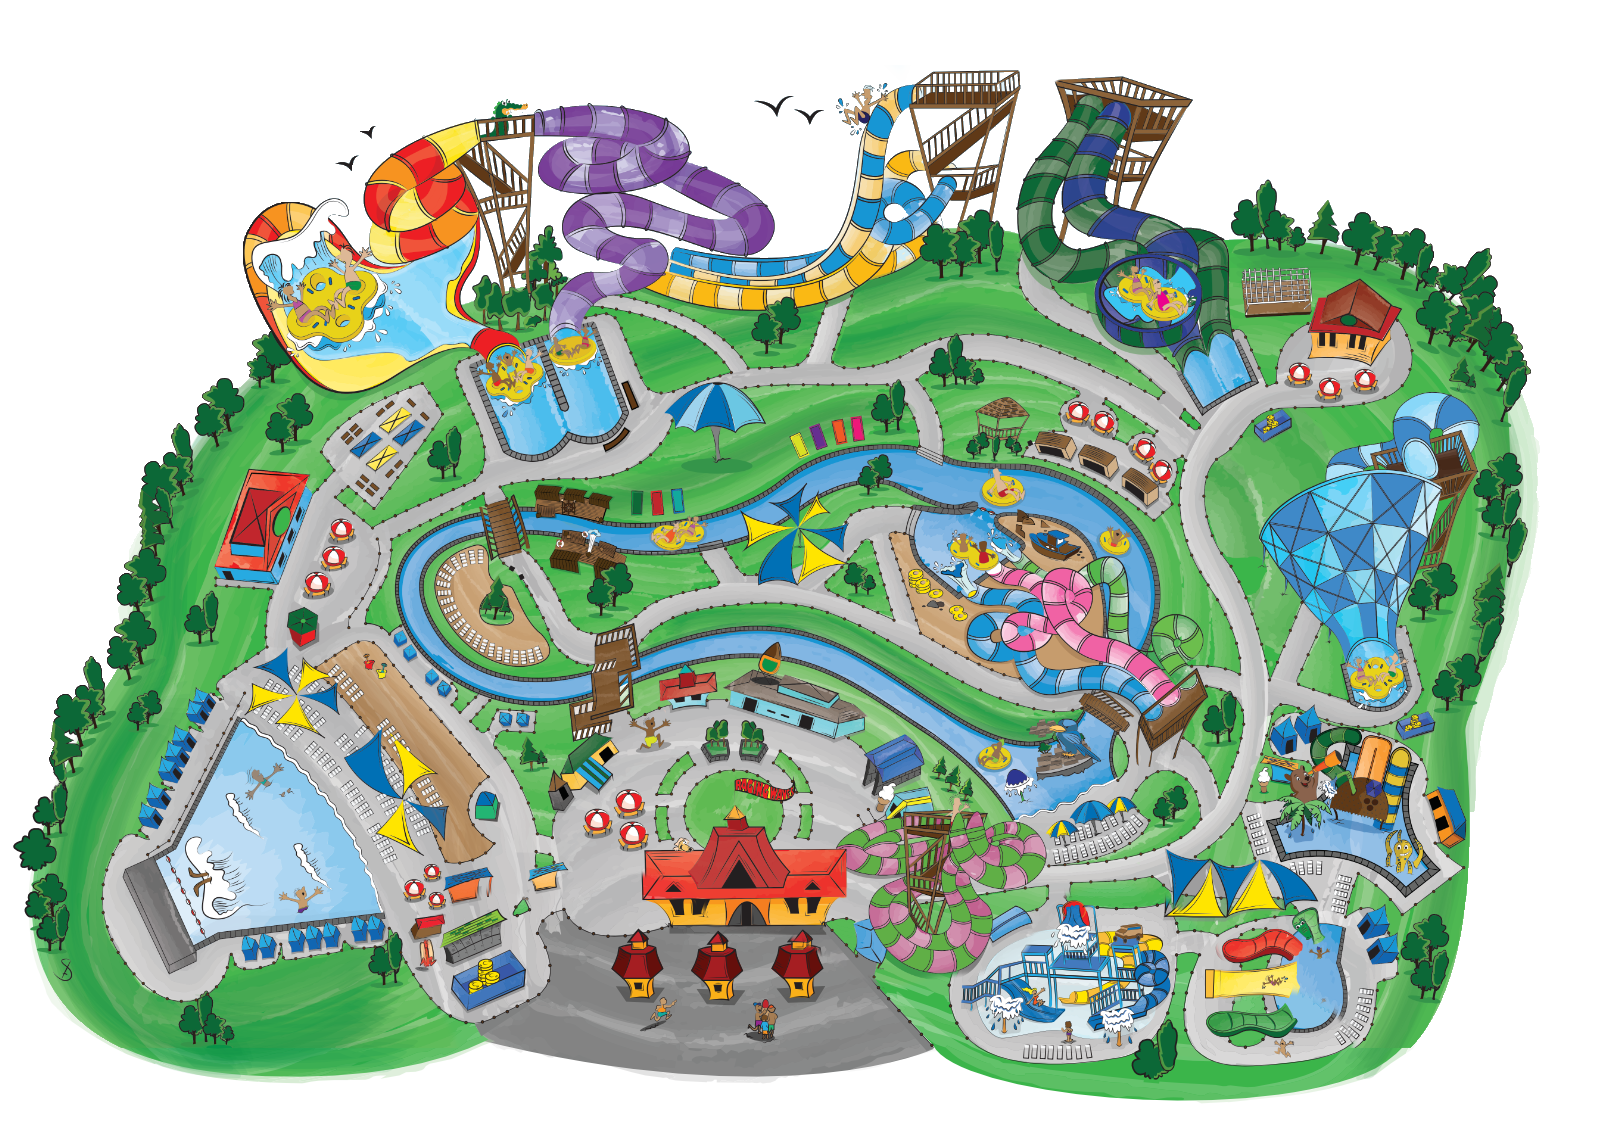 vector royalty free download Raging waves illinois largest. Amusement clipart parke.